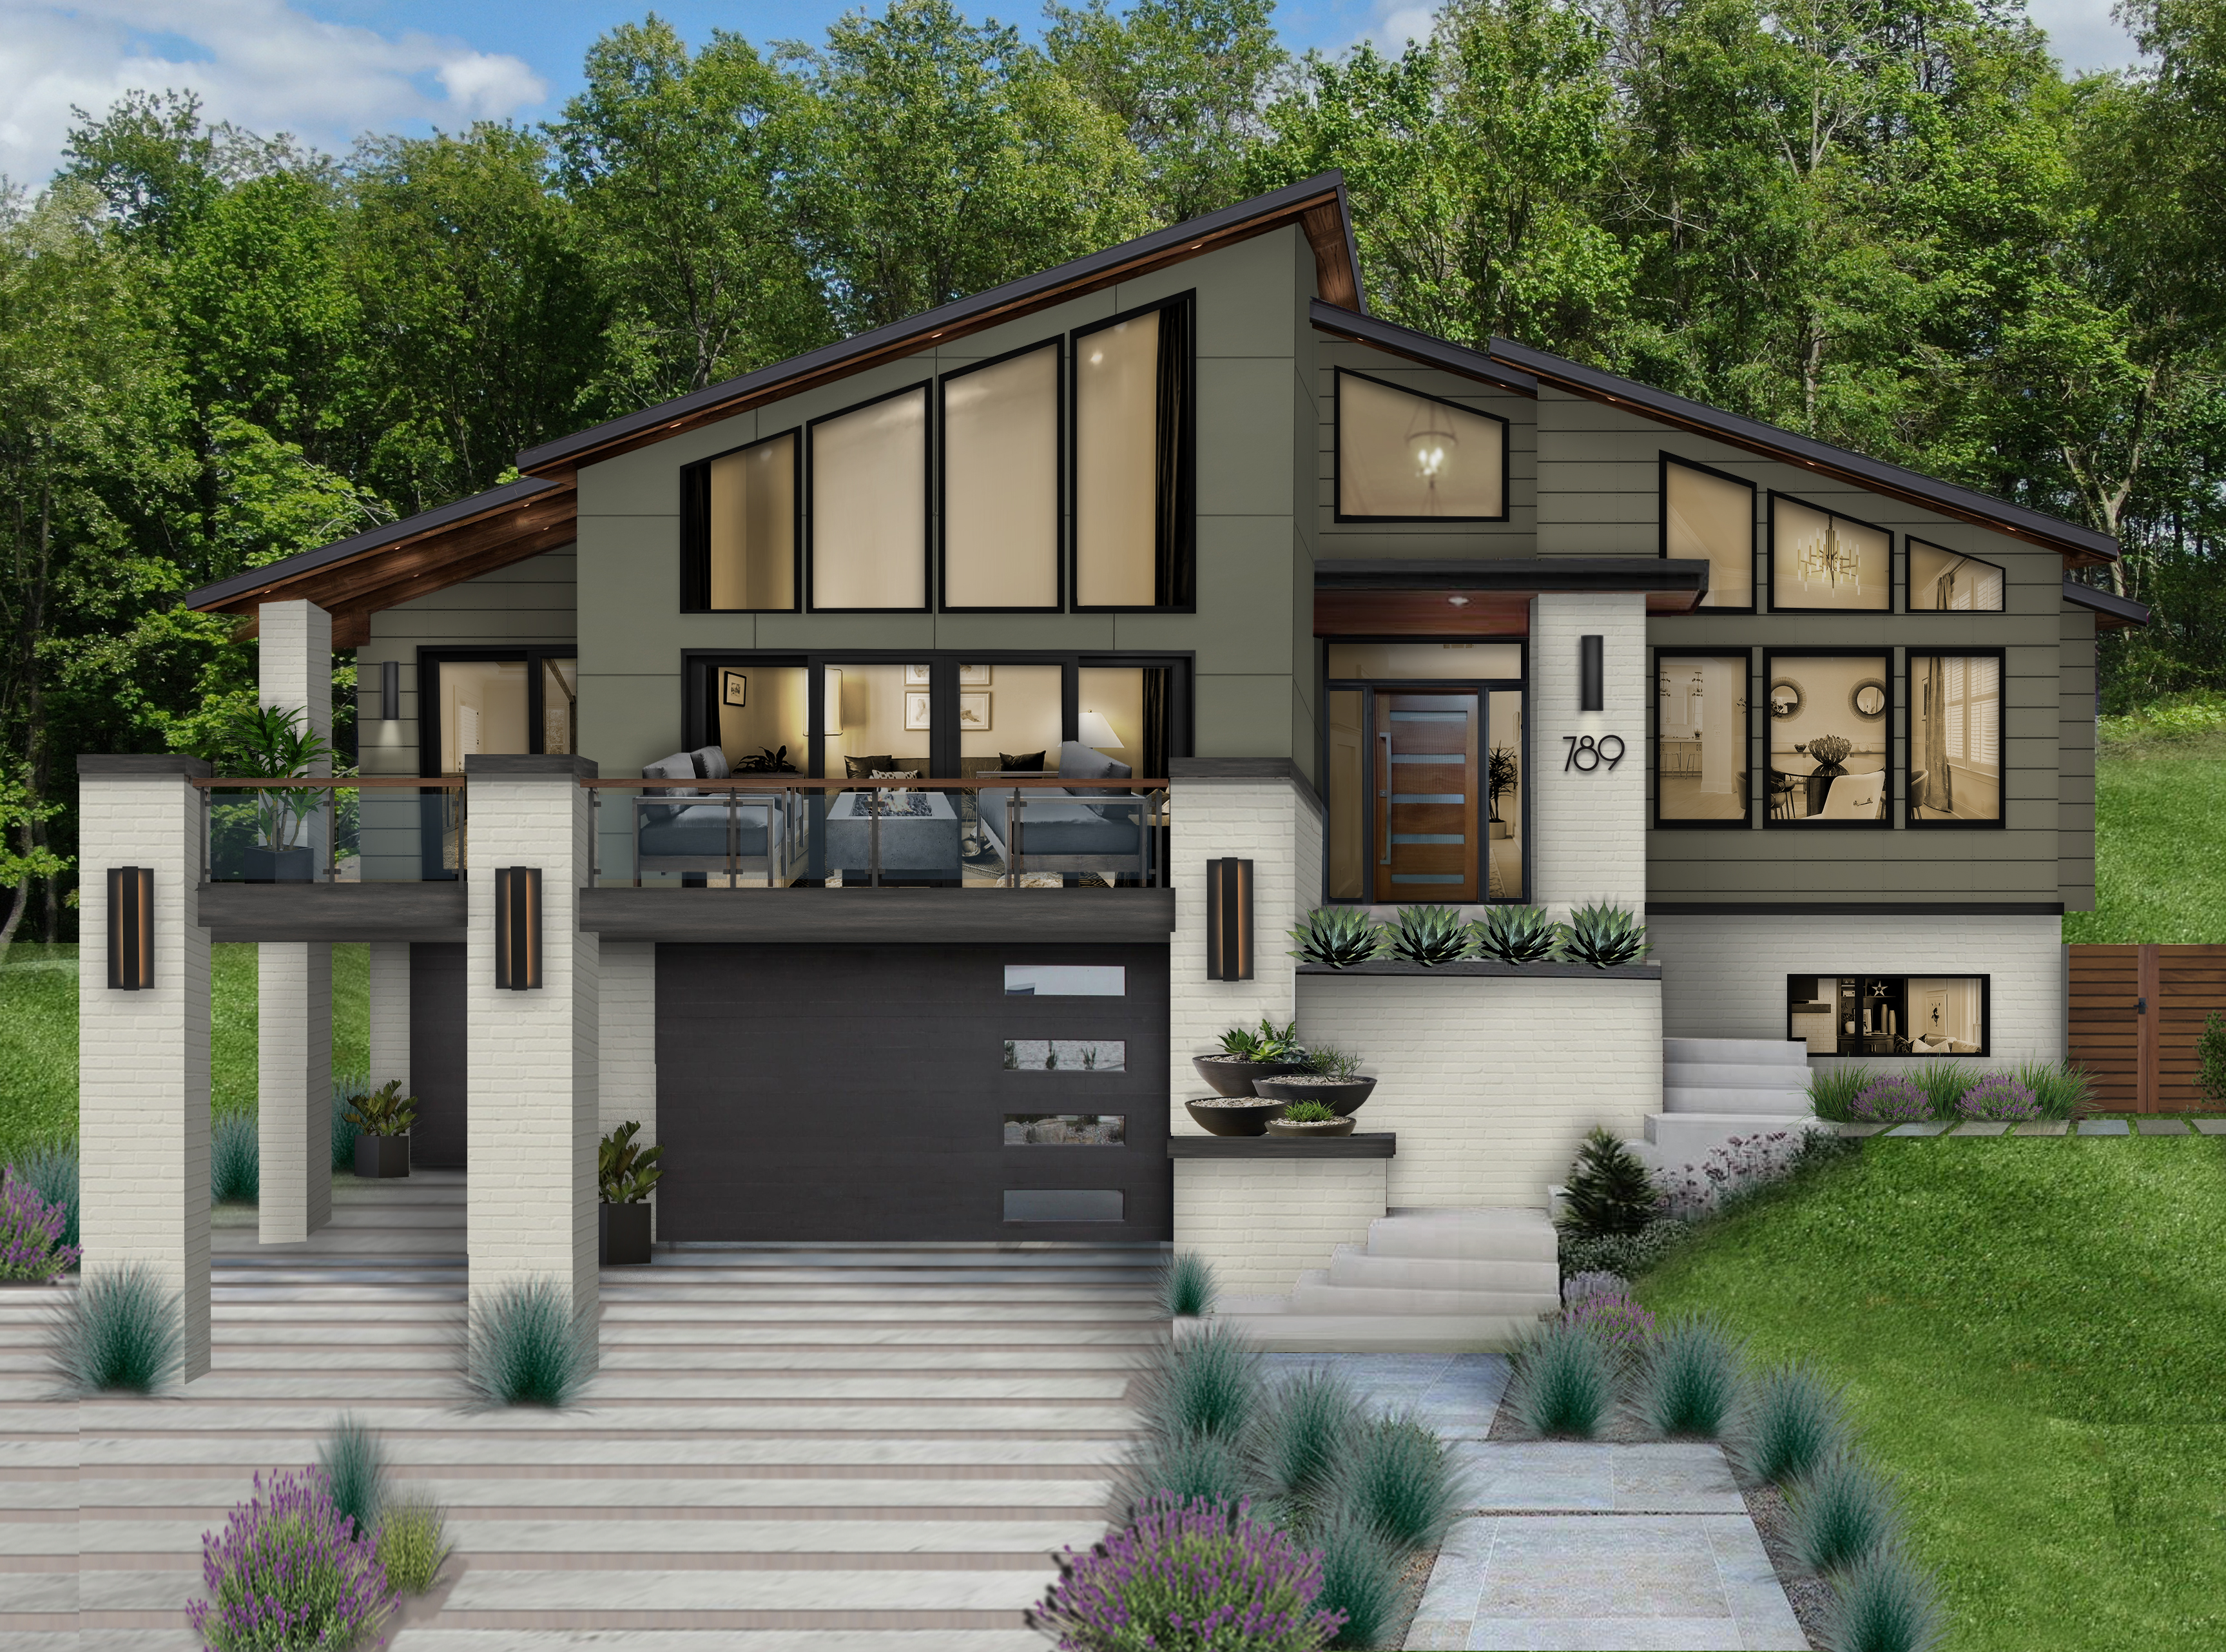 Virtual rendering of a contemporary new construction home that makes use of James Hardie siding in Summer Sage